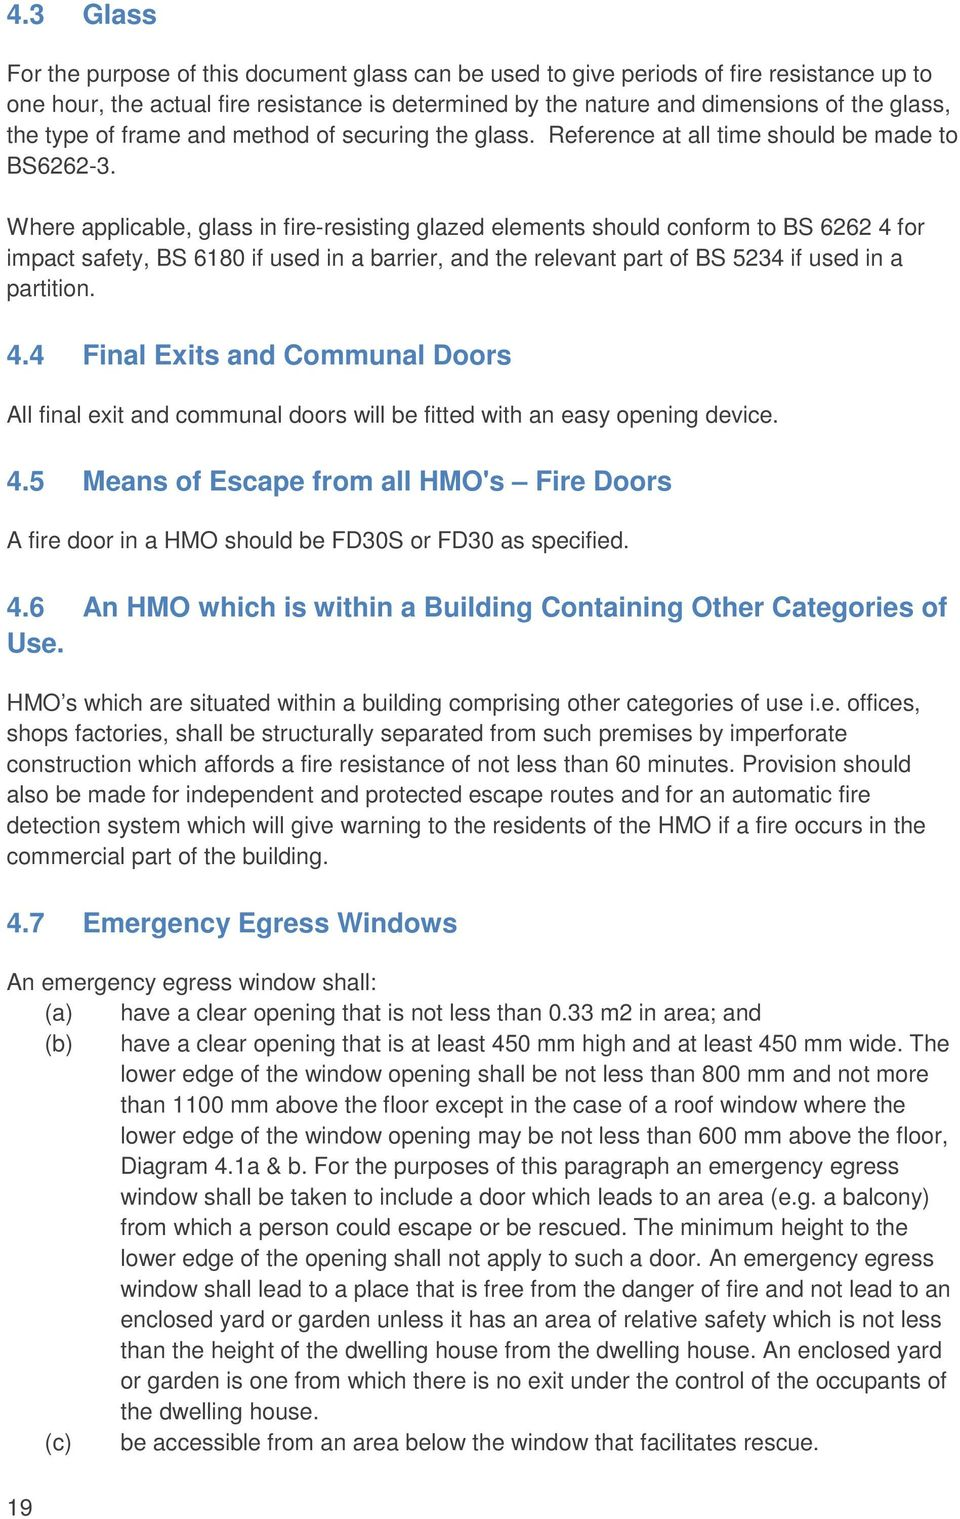 Where applicable, glass in fire-resisting glazed elements should conform to BS 6262 4 for impact safety, BS 6180 if used in a barrier, and the relevant part of BS 5234 if used in a partition. 4.4 Final Exits and Communal Doors All final exit and communal doors will be fitted with an easy opening device.